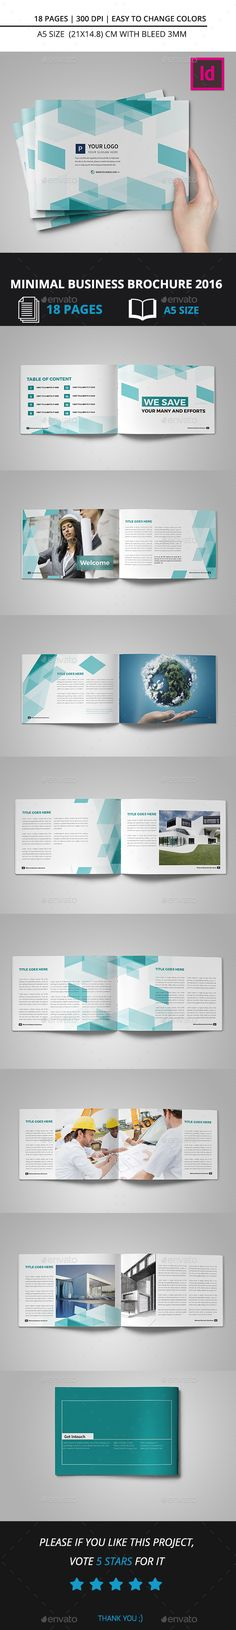 A4 Corporate Architecture Brochure Fonts-logos-icons Pinterest - architecture brochure template